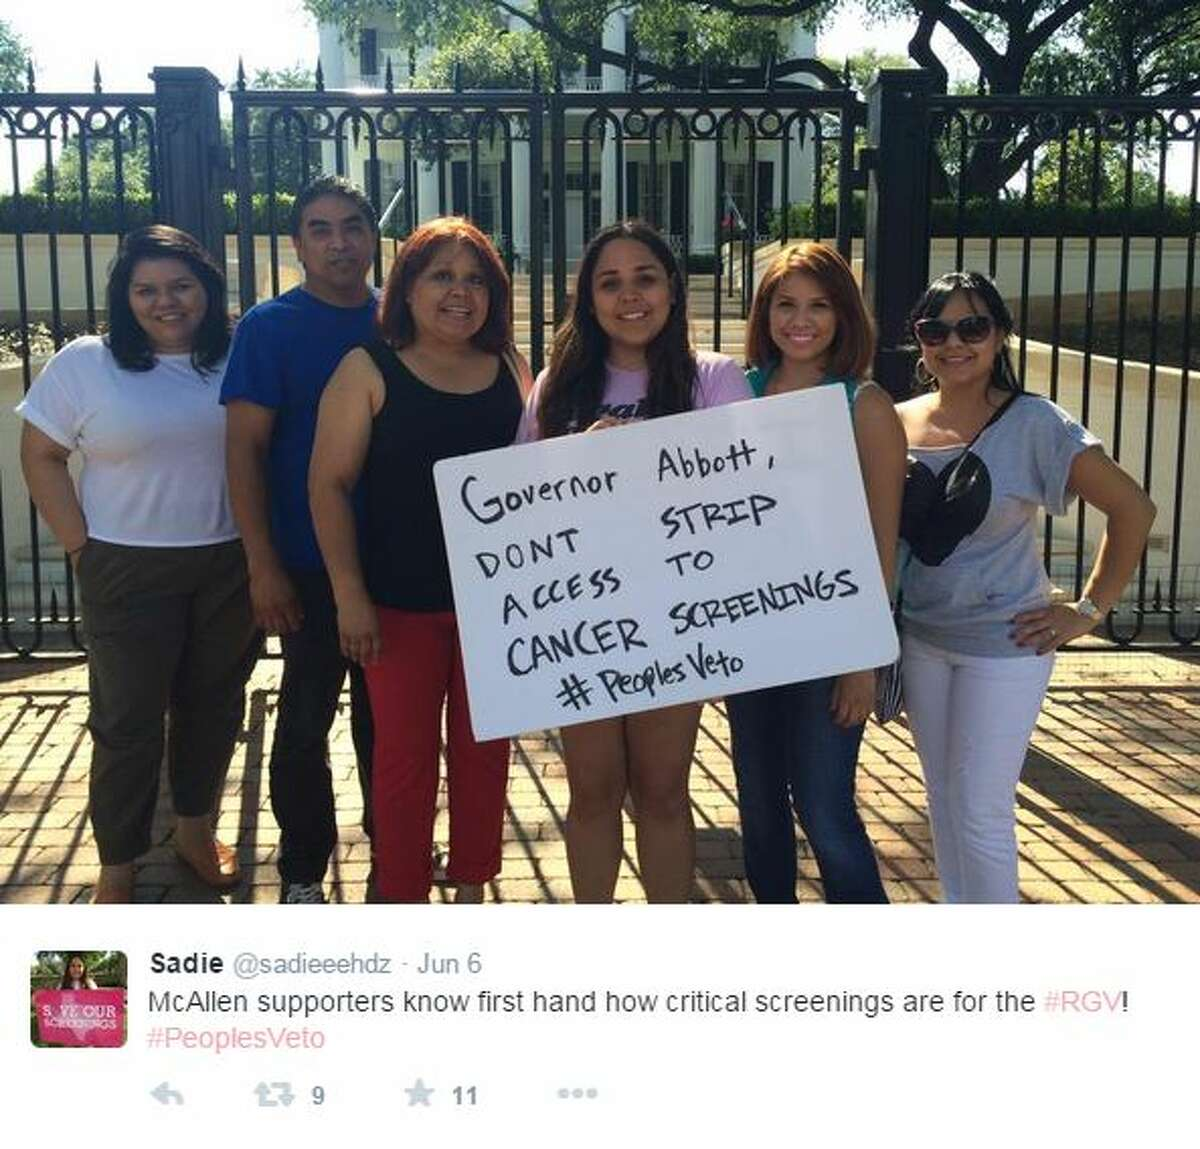 Texas college student protests Governor Greg Abbott's decision to discontinue Planned Parenthood's breast cancer and cervical cancer screening services.